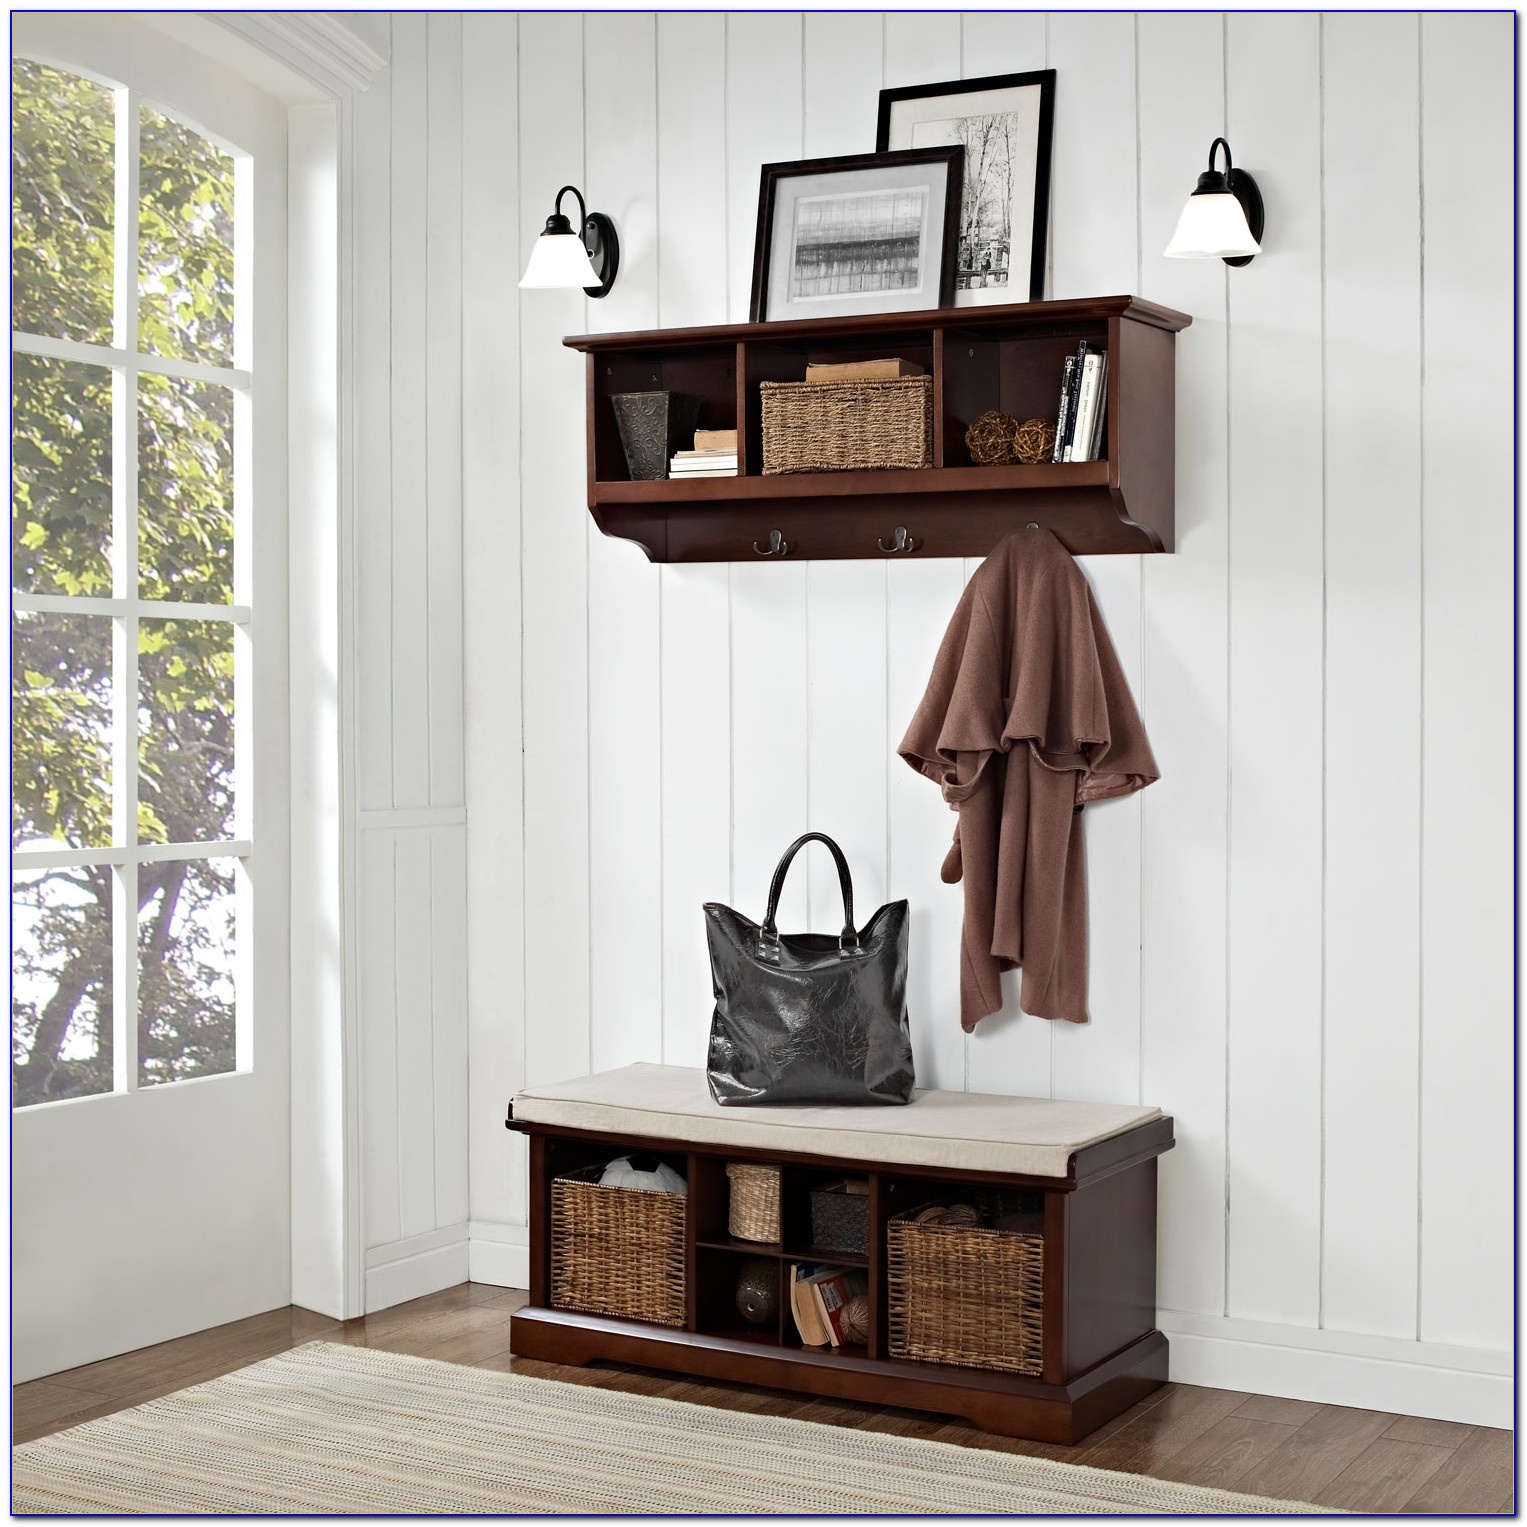 Entry Bench With Shelf